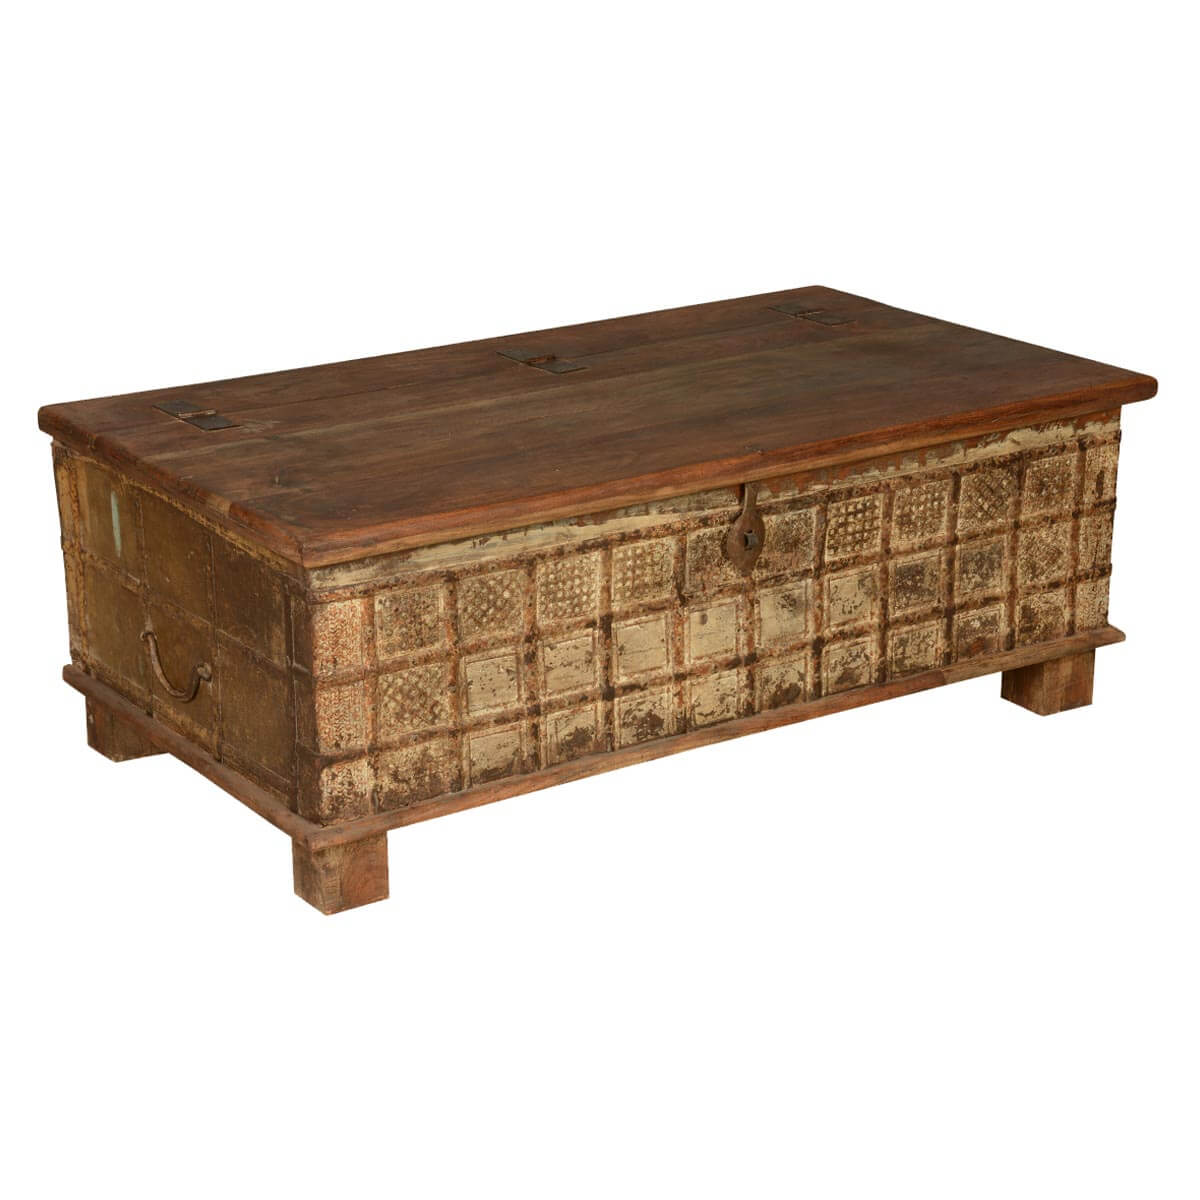 Gothic reclaimed wood coffee table chest Recycled wood coffee table